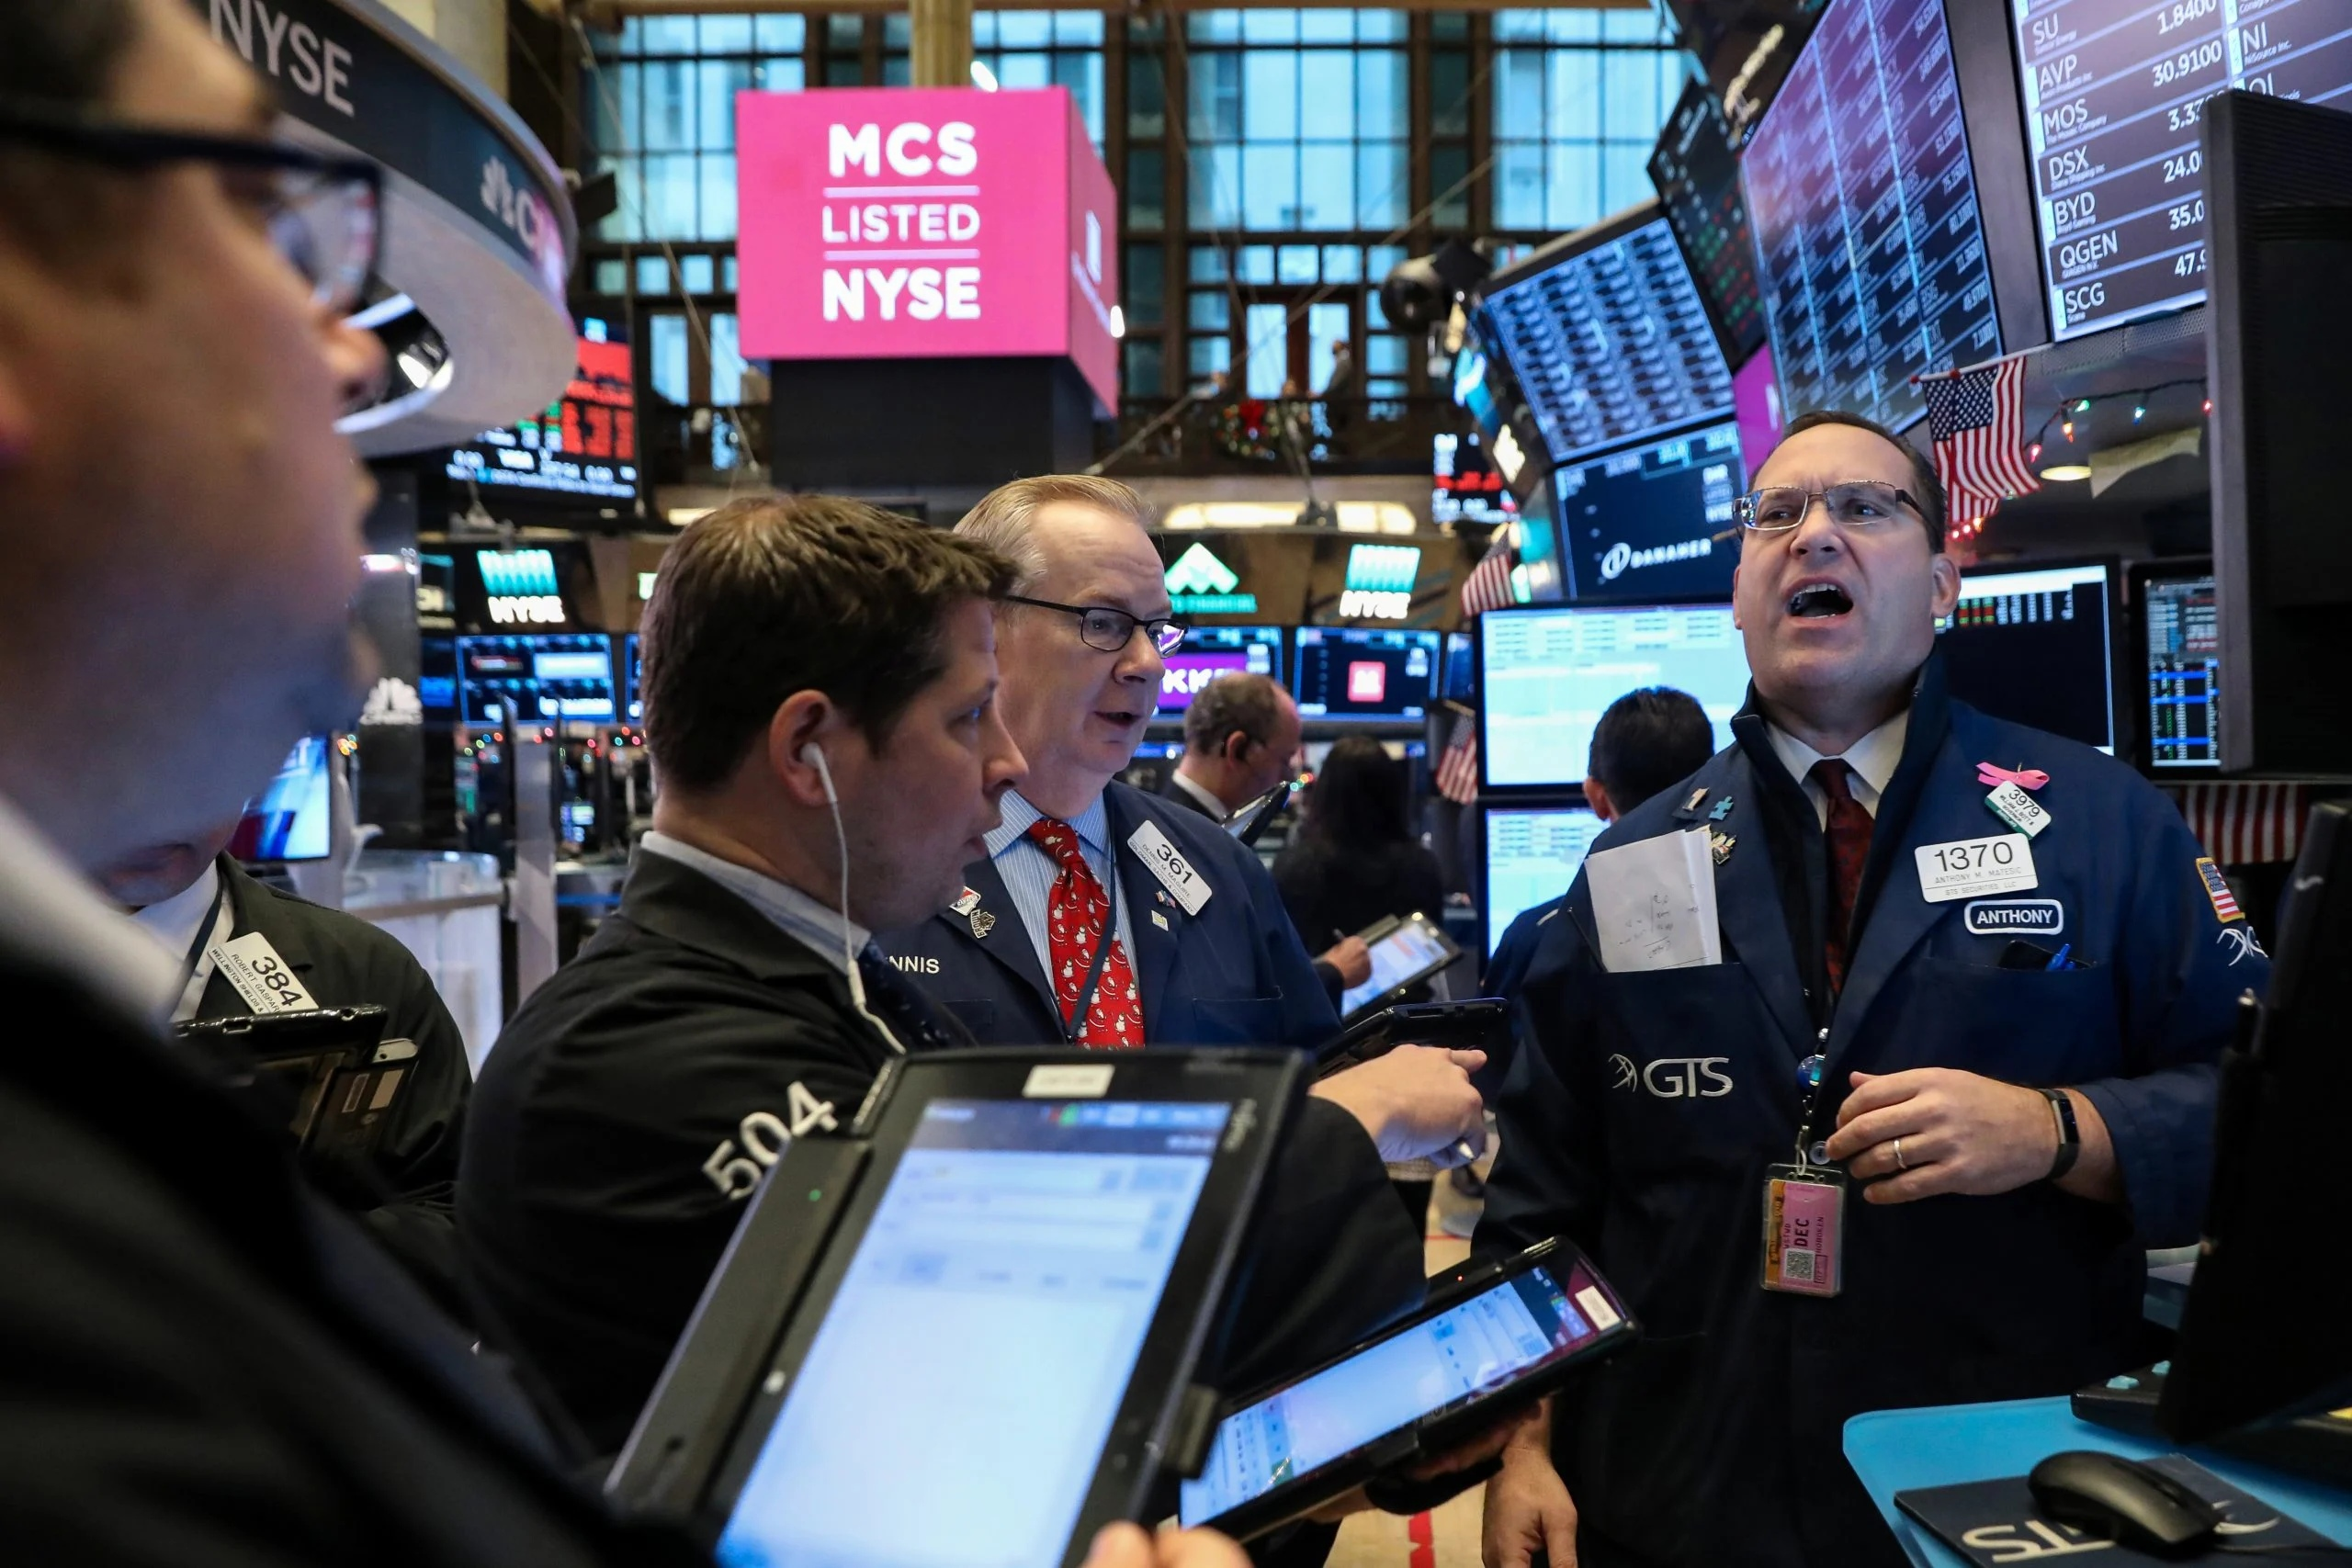 Problems on the stock exchange again - economic recovery could be reversed